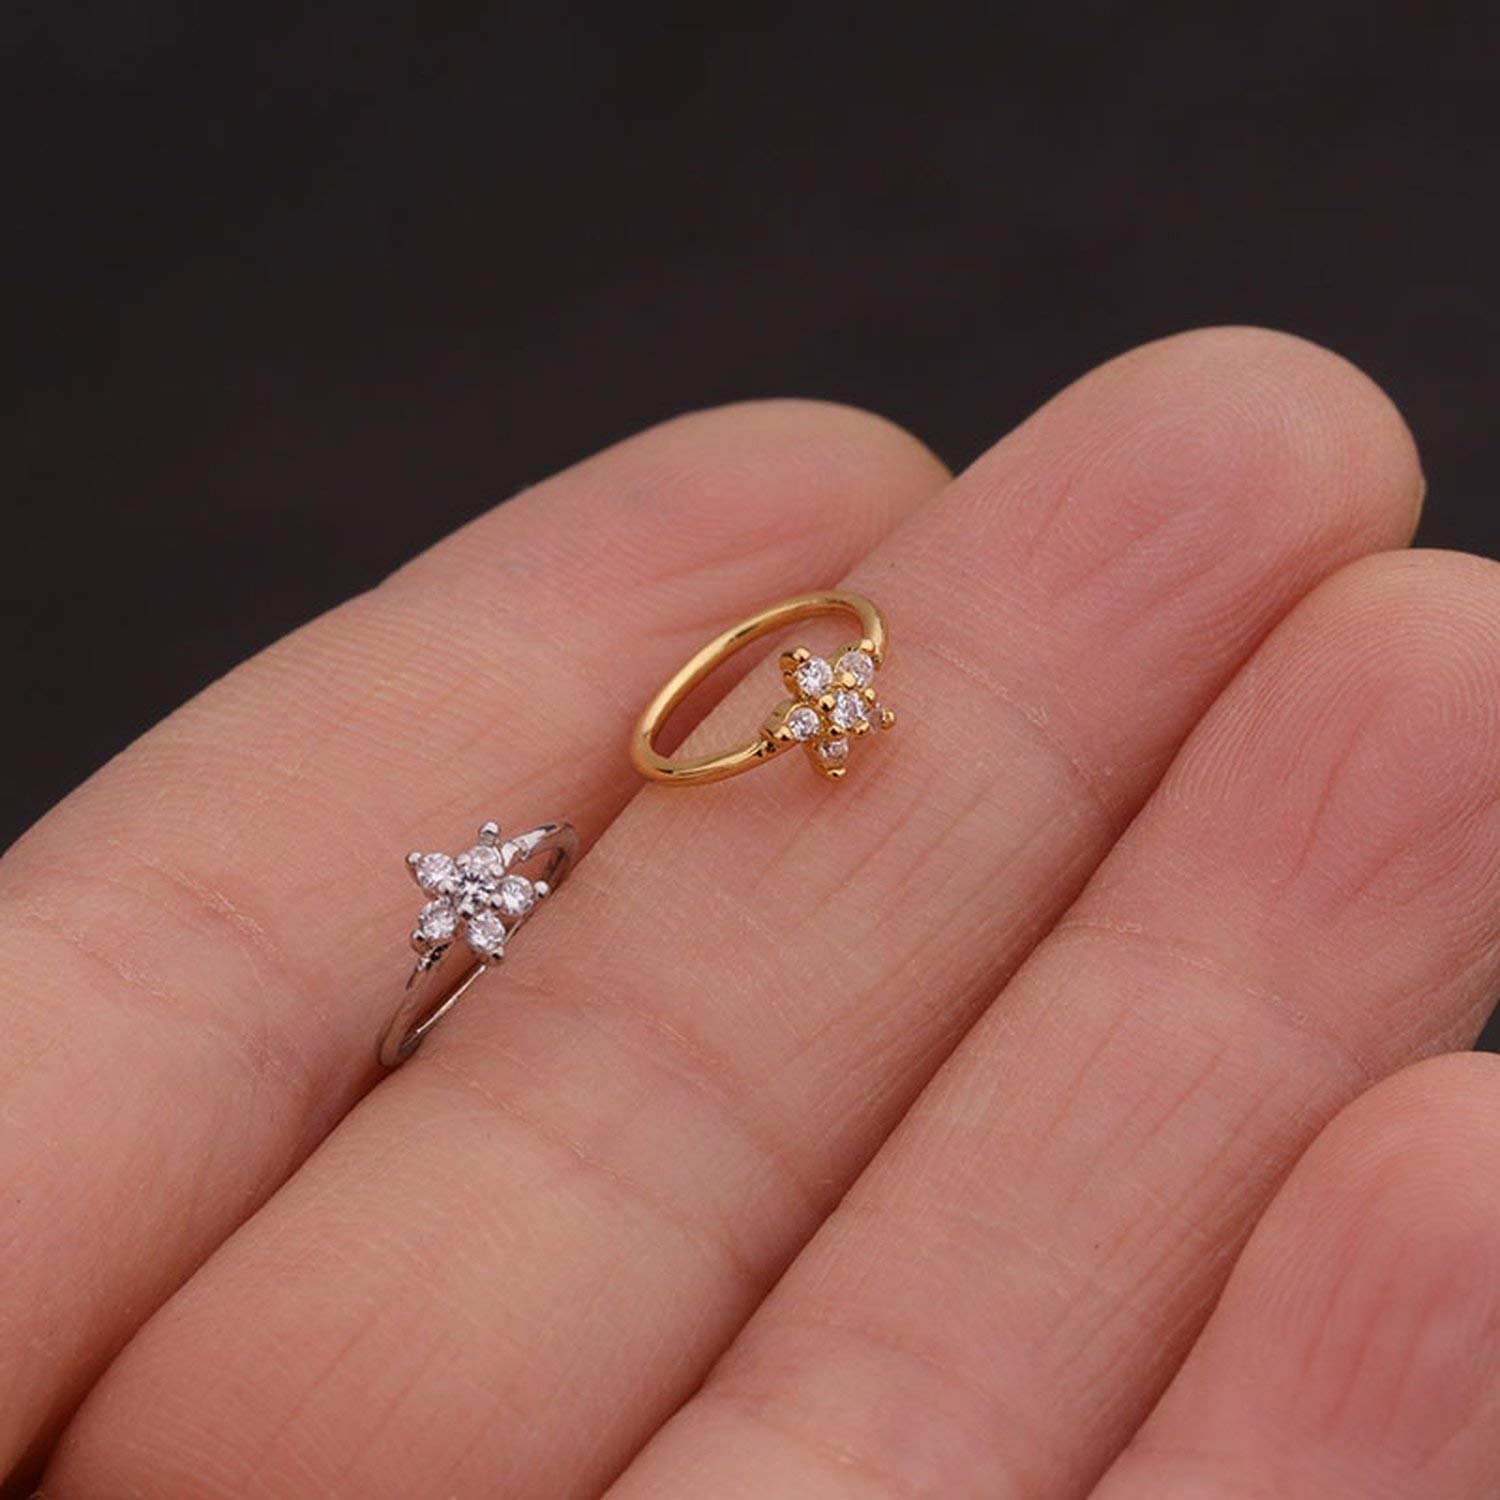 1PC Silver And Gold Color 20gx8mm Nose Piercing Jewelry Nose Hoop Nostril Helix Cartilage Earring